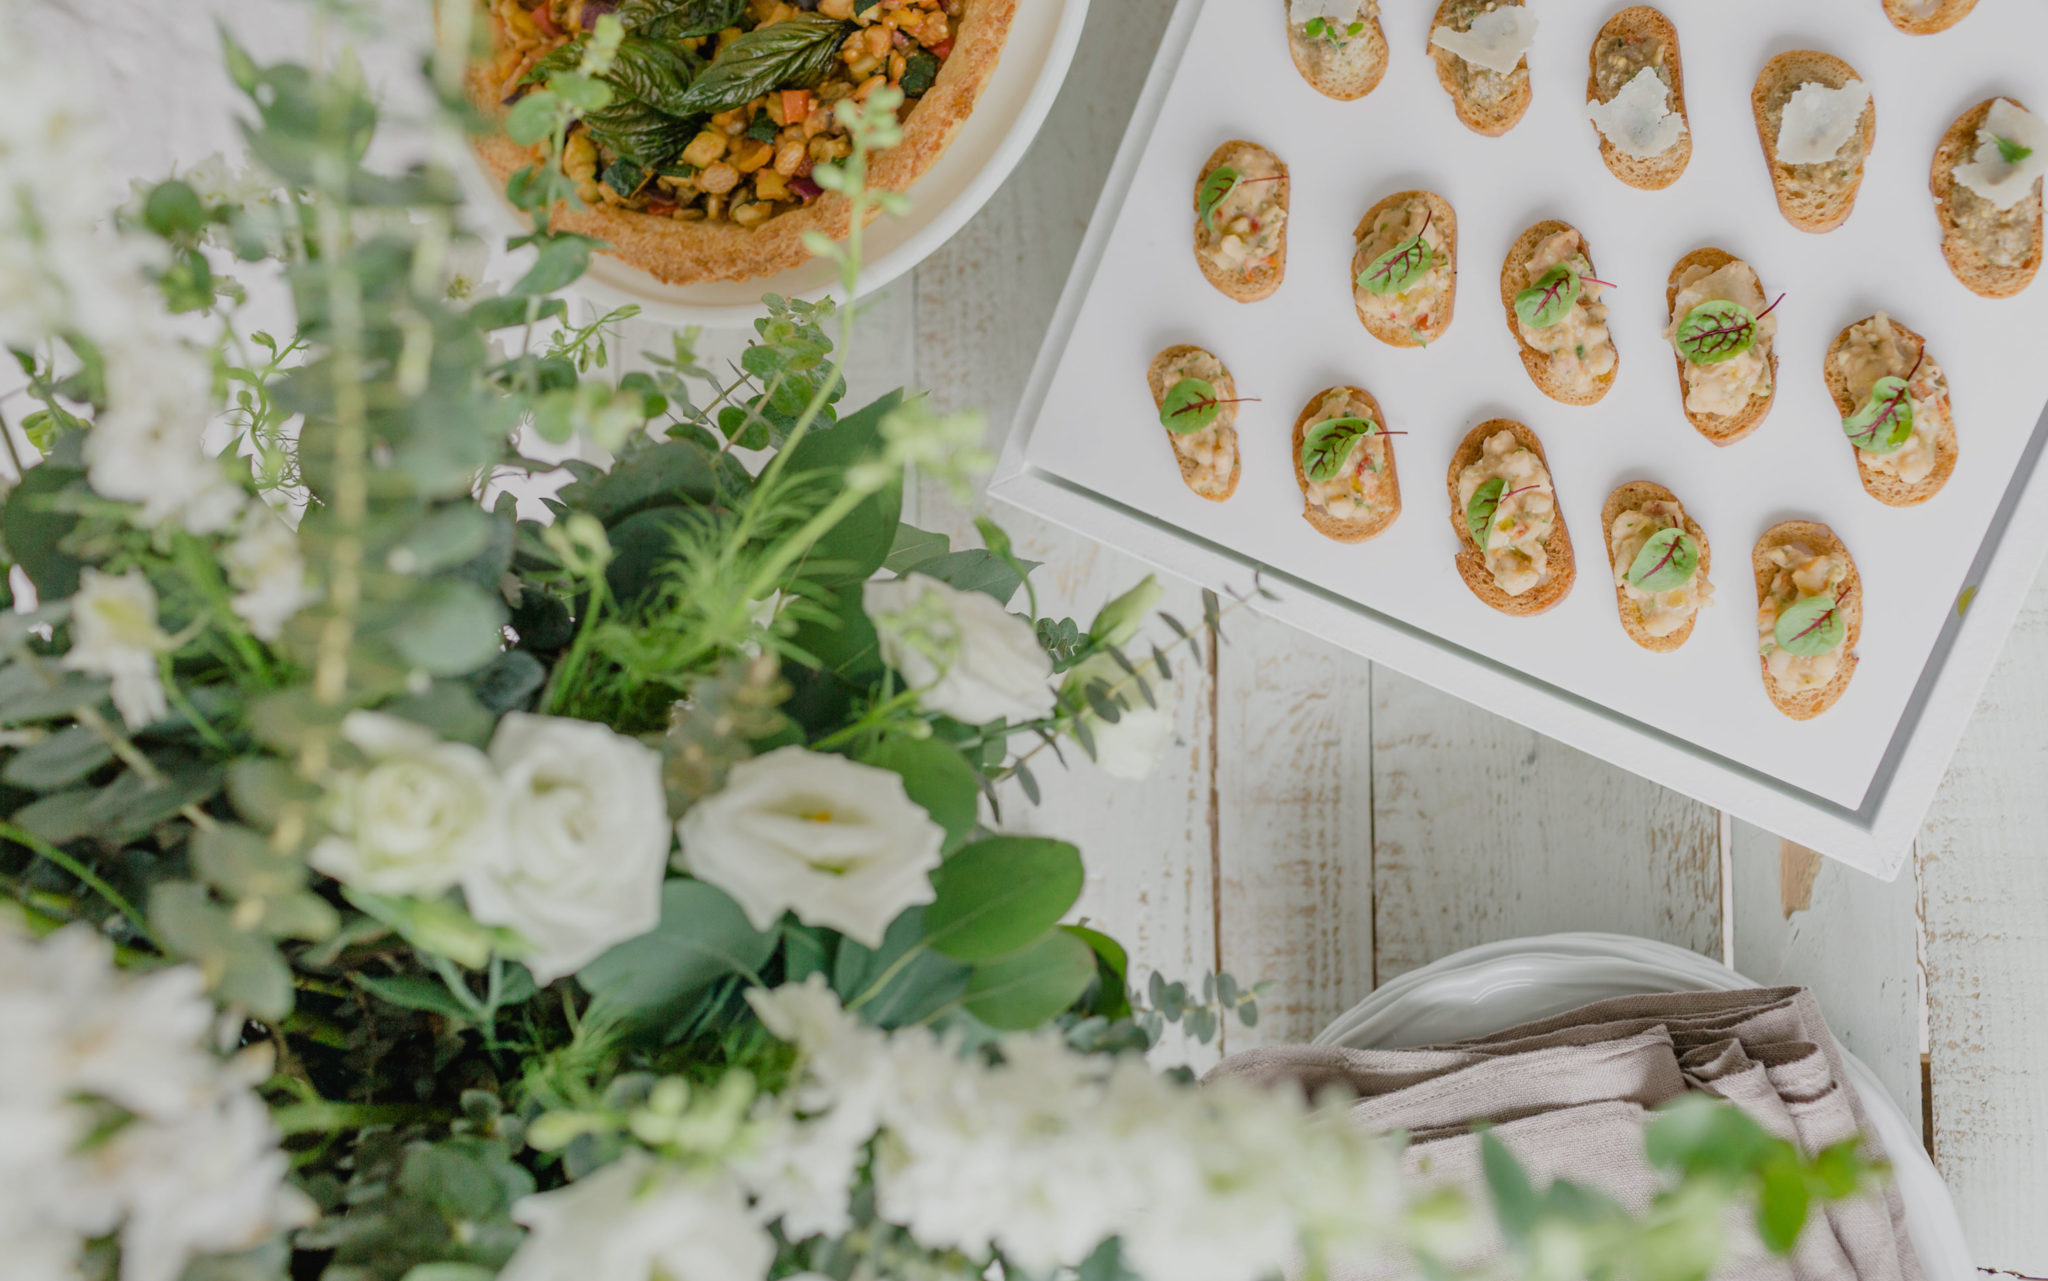 Arial shot of a table from an event catered by Ristorante Beatrice